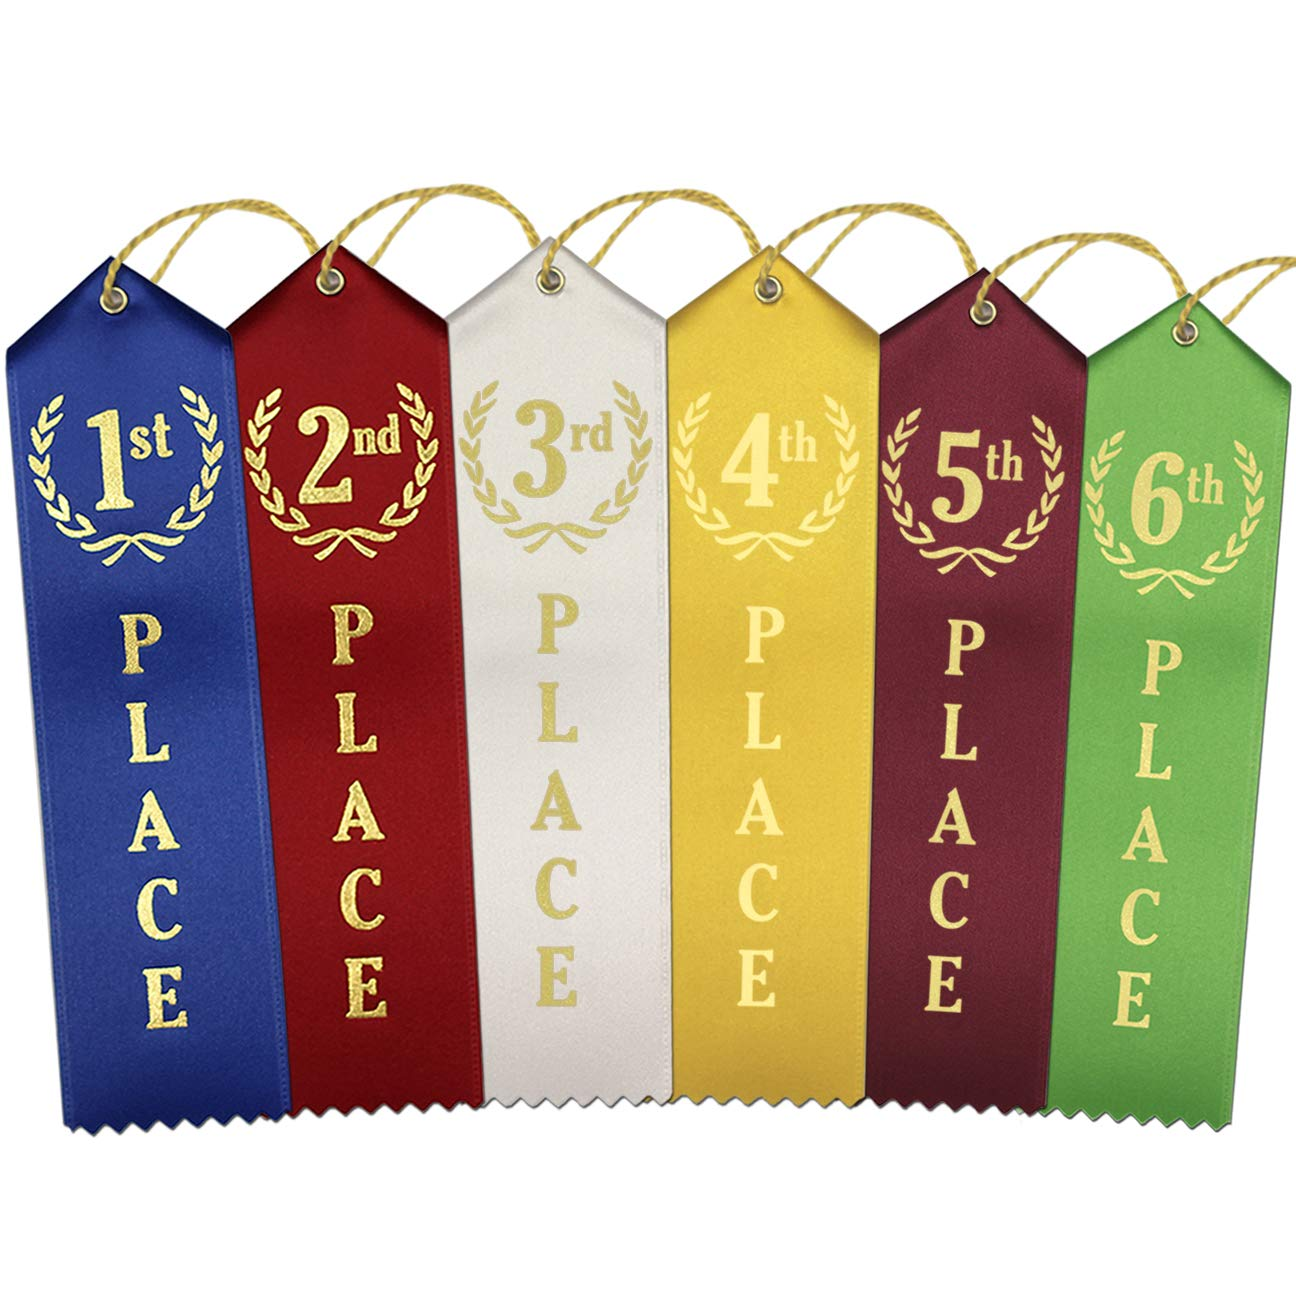 1st - 6th Place Award Ribbons - 12 Each Place (72 Count Total) by RibbonsNow